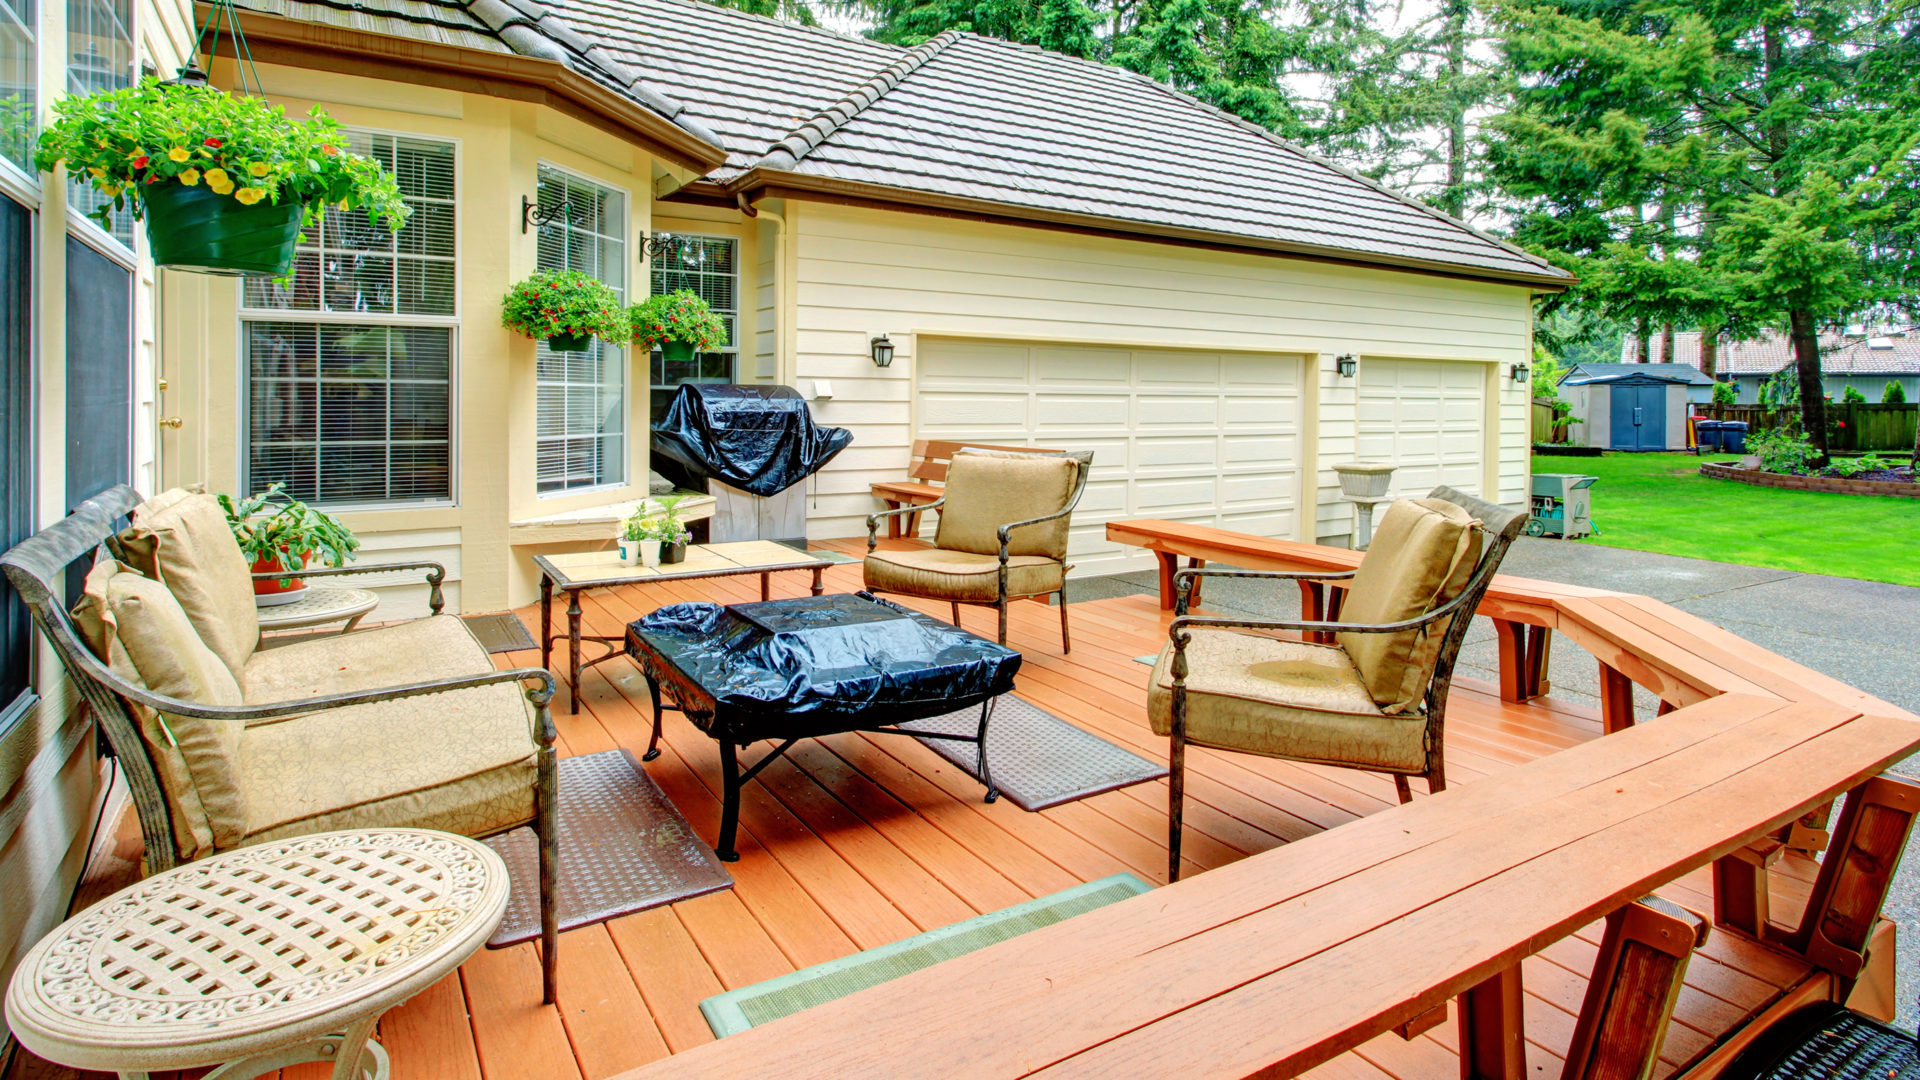 Bon Remodeling Your Backyard And Creating An Awesome Outdoor Patio